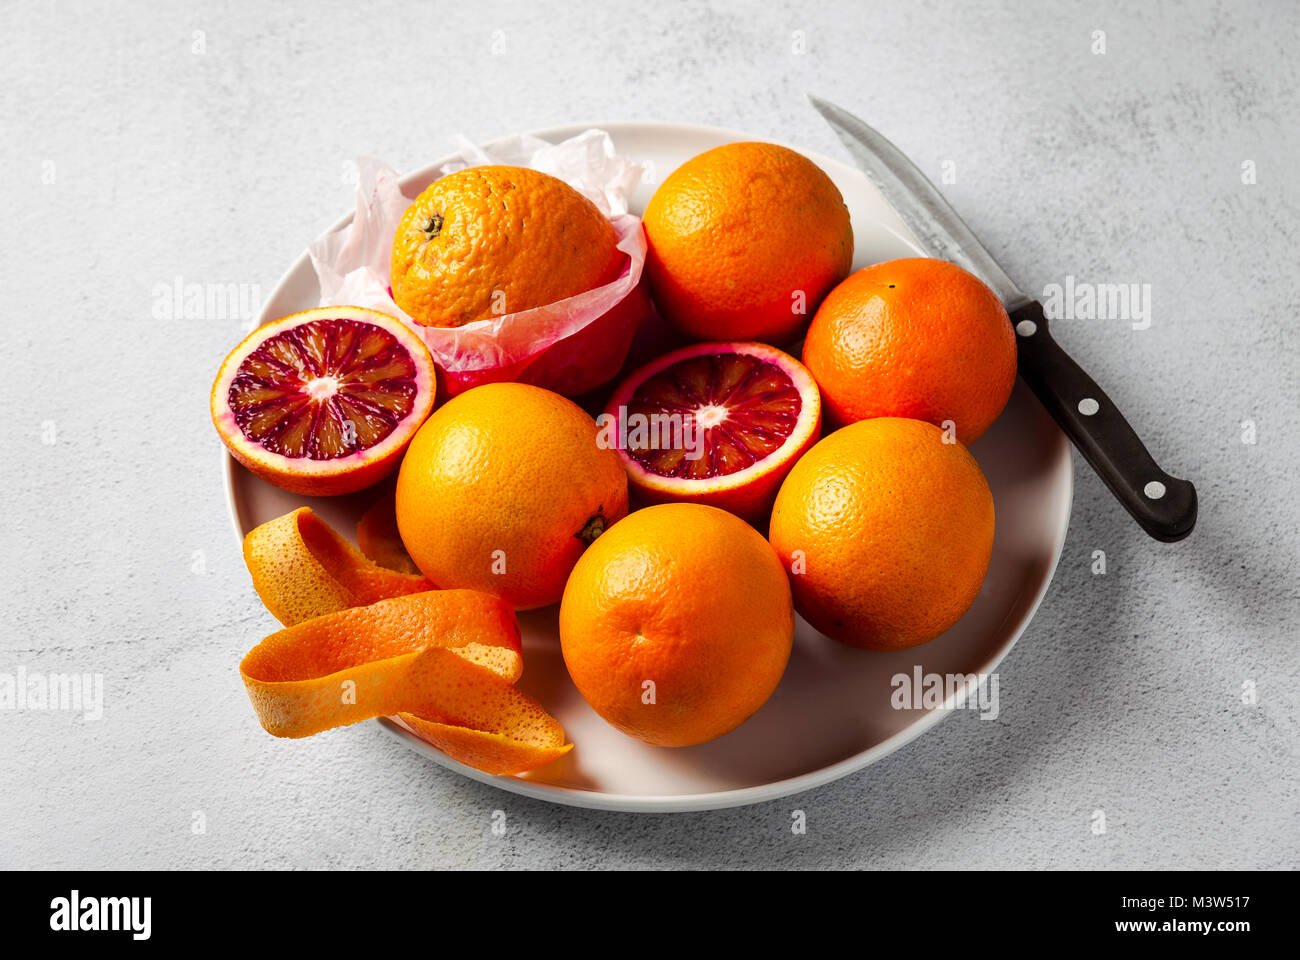 A group of oranges on a plate. some of them cut. knife . on a stone background. a healthy summer table, the preparation Stock Photo